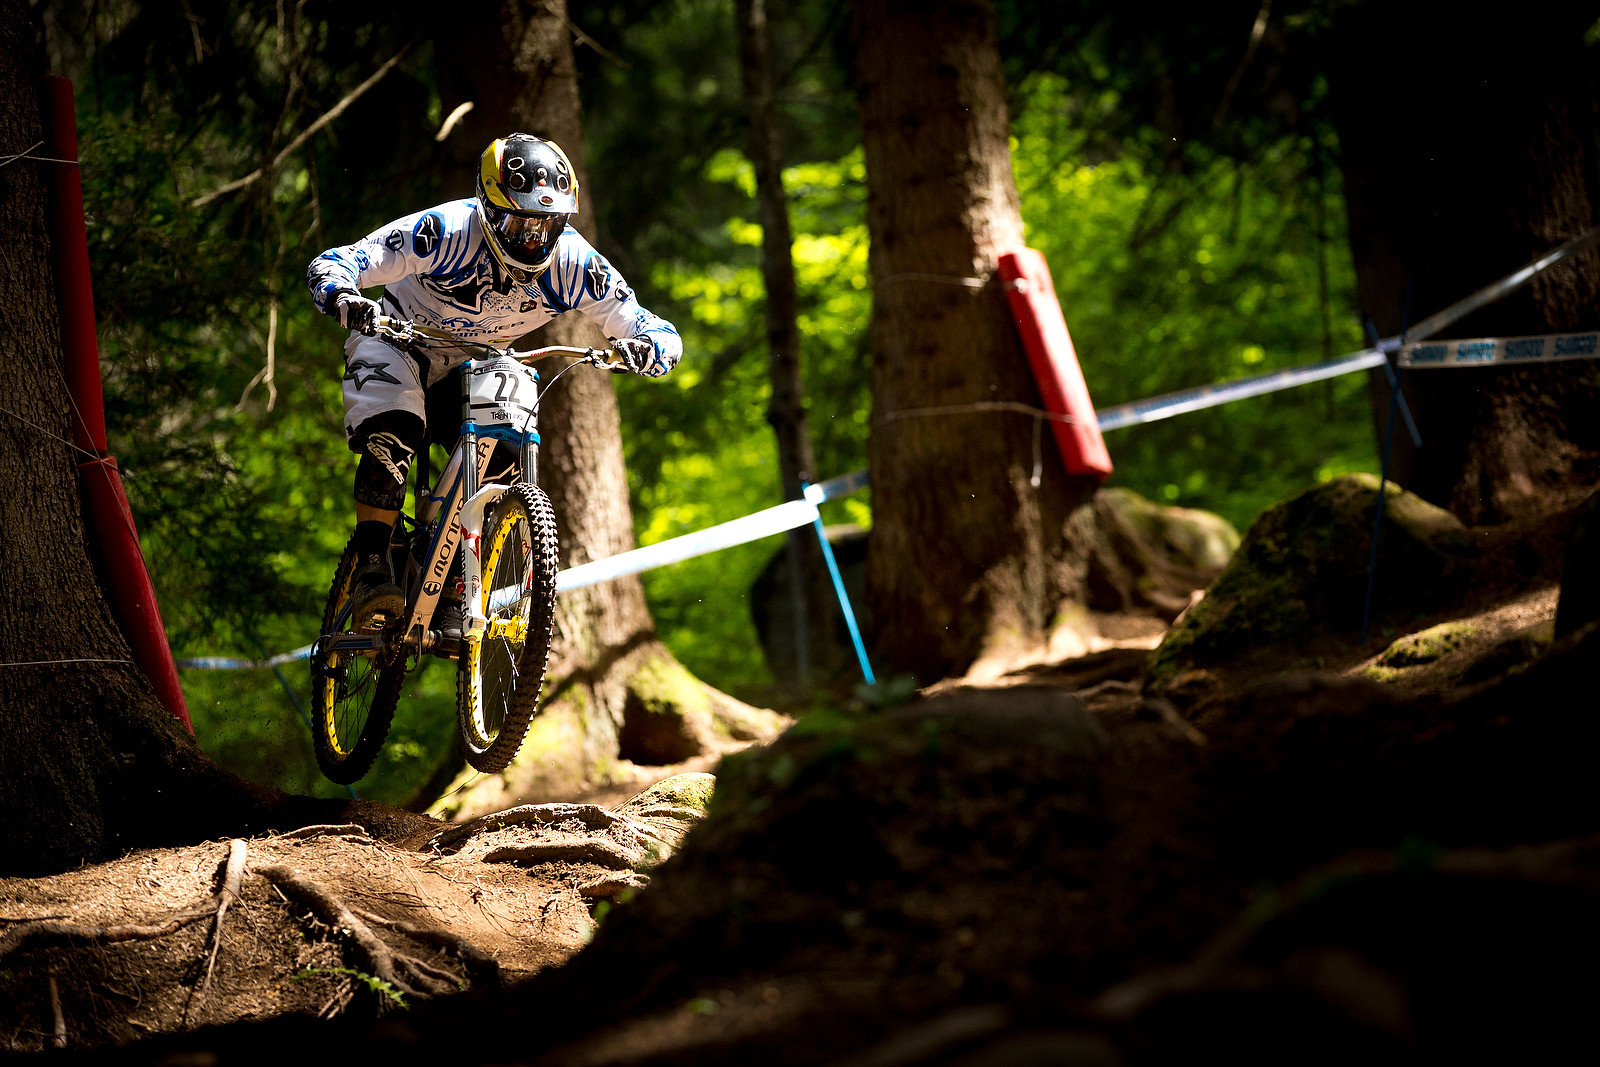 Damien Spagnolo, Fastest in Timed Practice at Val di Sole - 2012 UCI World Cup, Val di Sole Day 2 - Mountain Biking Pictures - Vital MTB